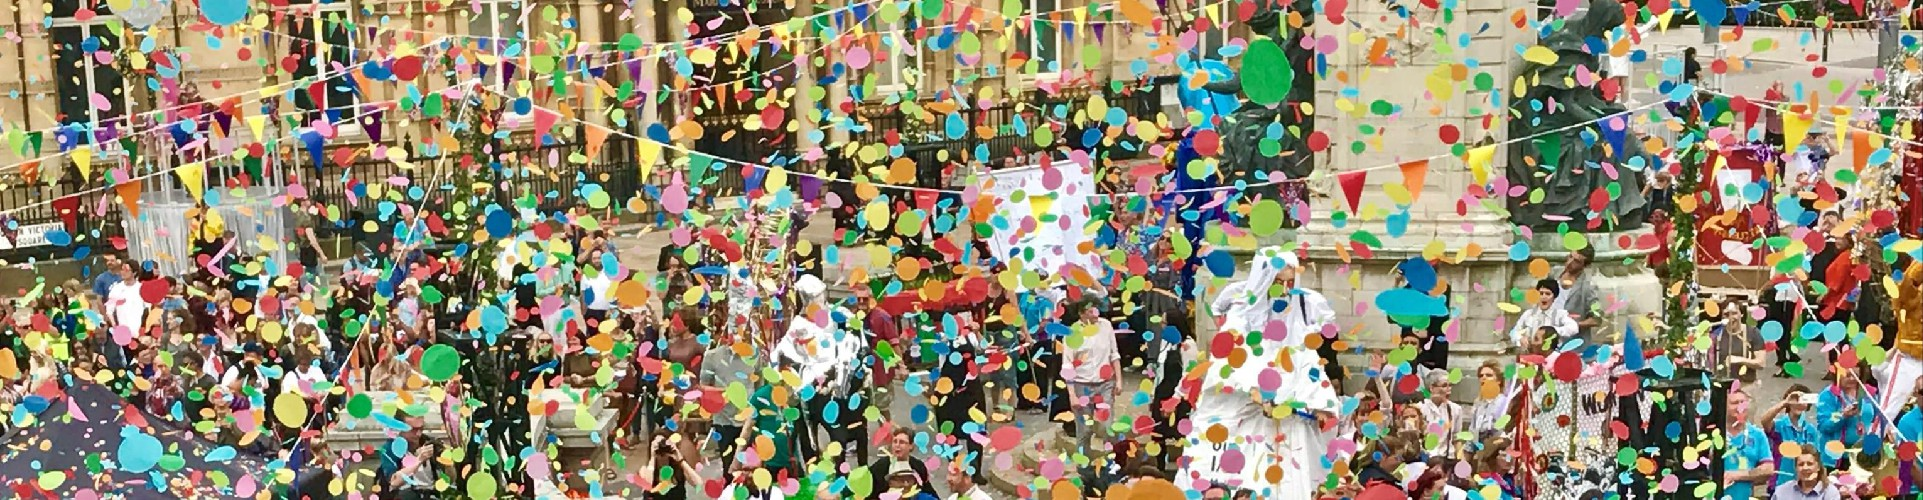 multicolour confetti circles fill town square